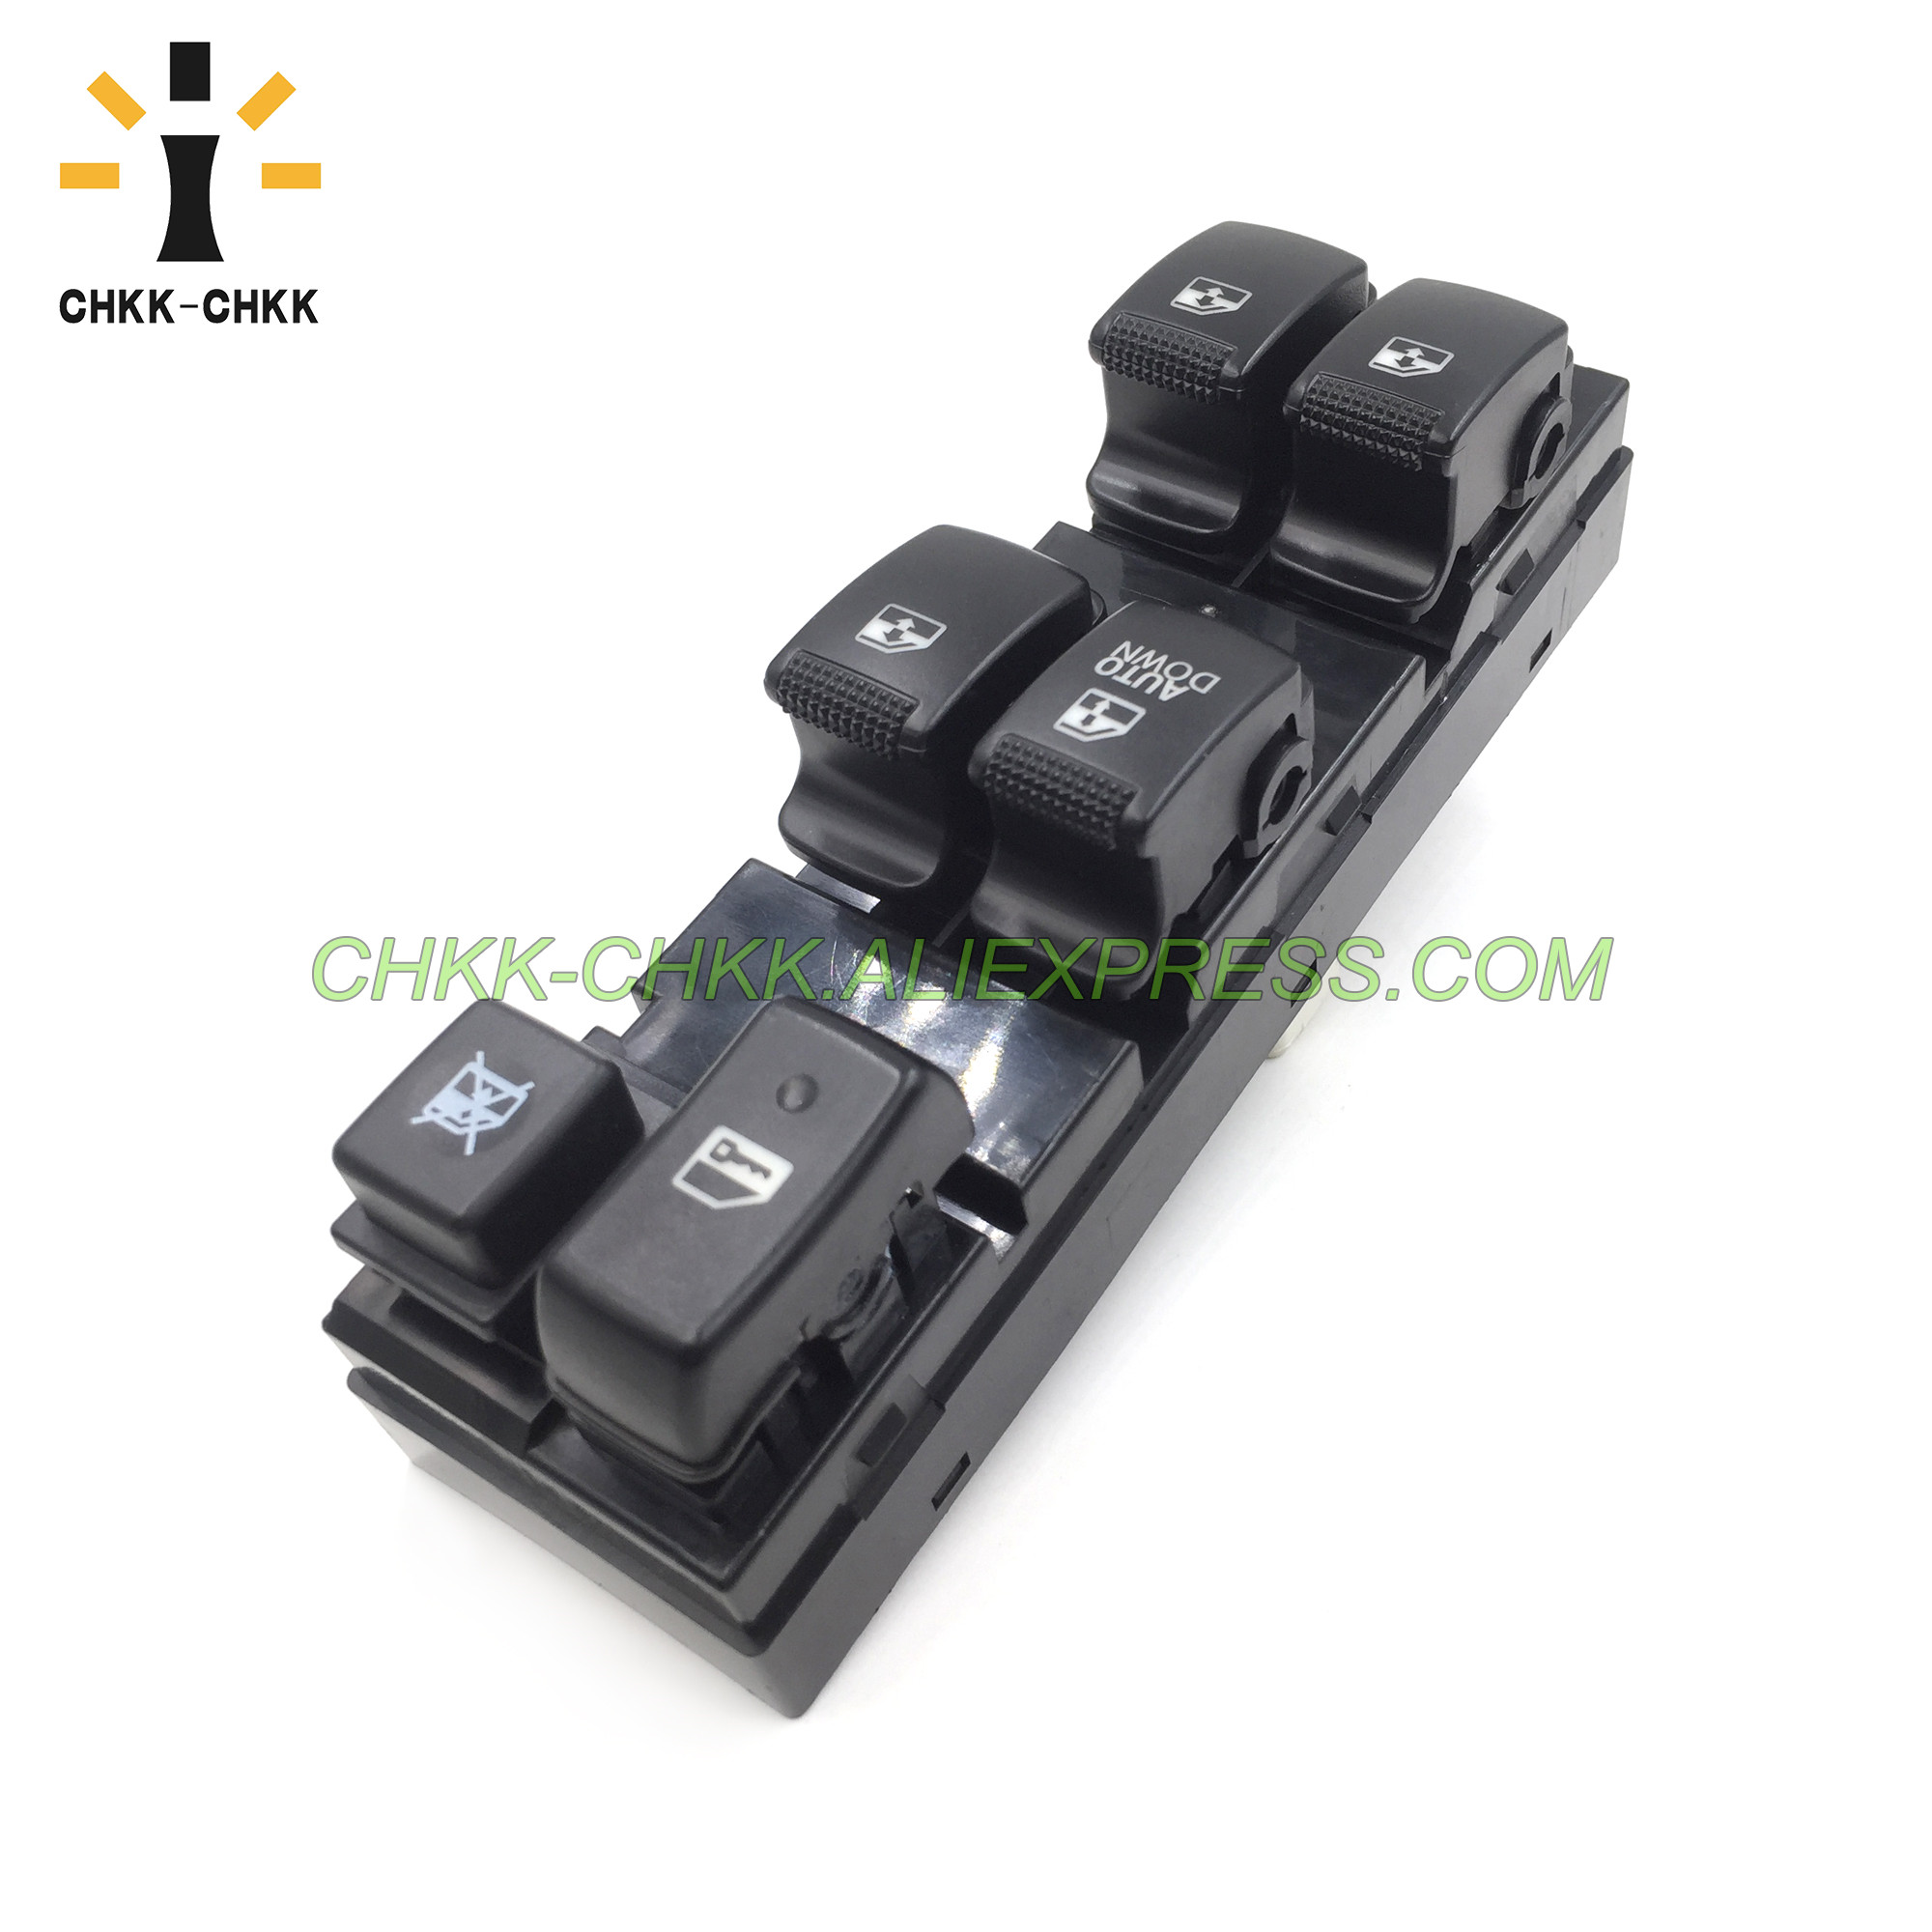 CHKK CHKK 93570 2E000 Master Power Window Switch for Hyundai Tucson 2005 2010 935702E000 in Intelligent Window Coser from Automobiles Motorcycles